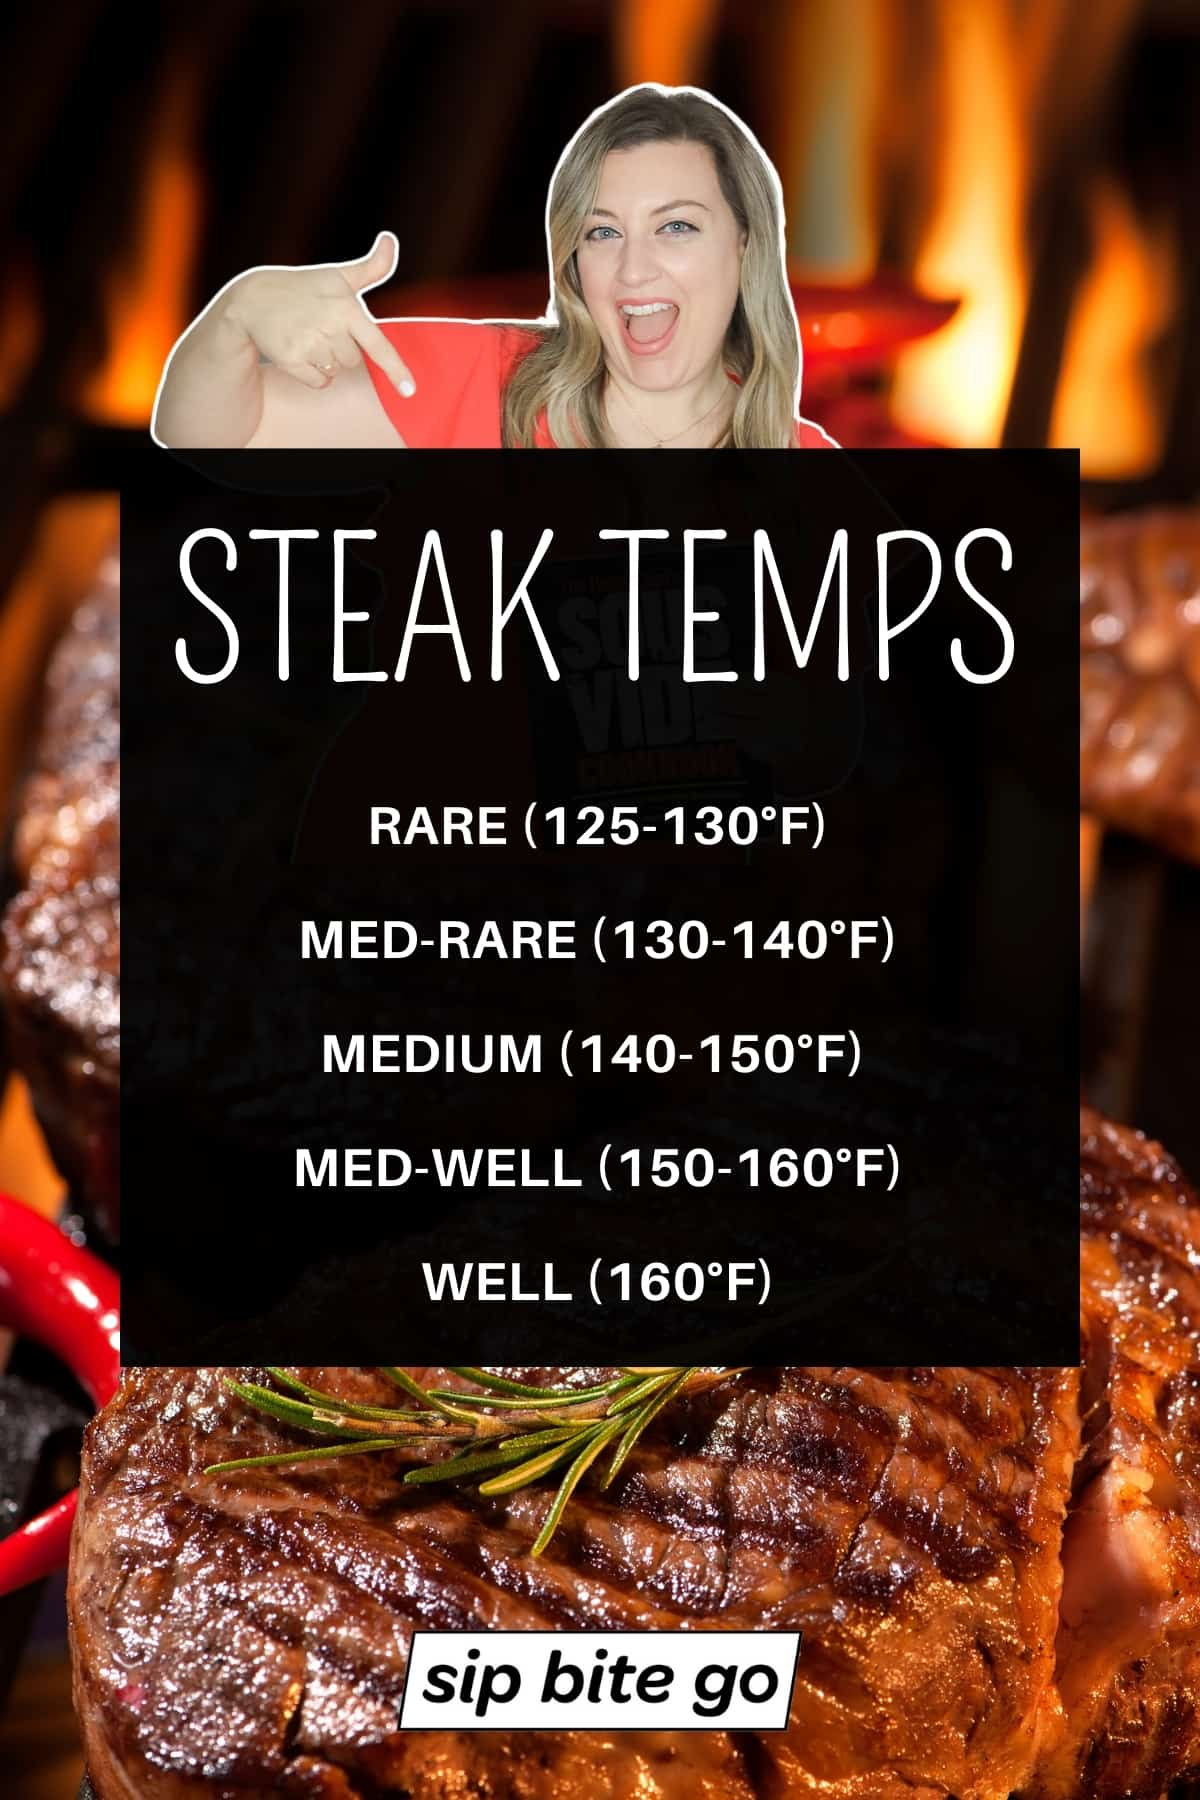 Steak temperature cooking chart with Sip Bite Go logo.